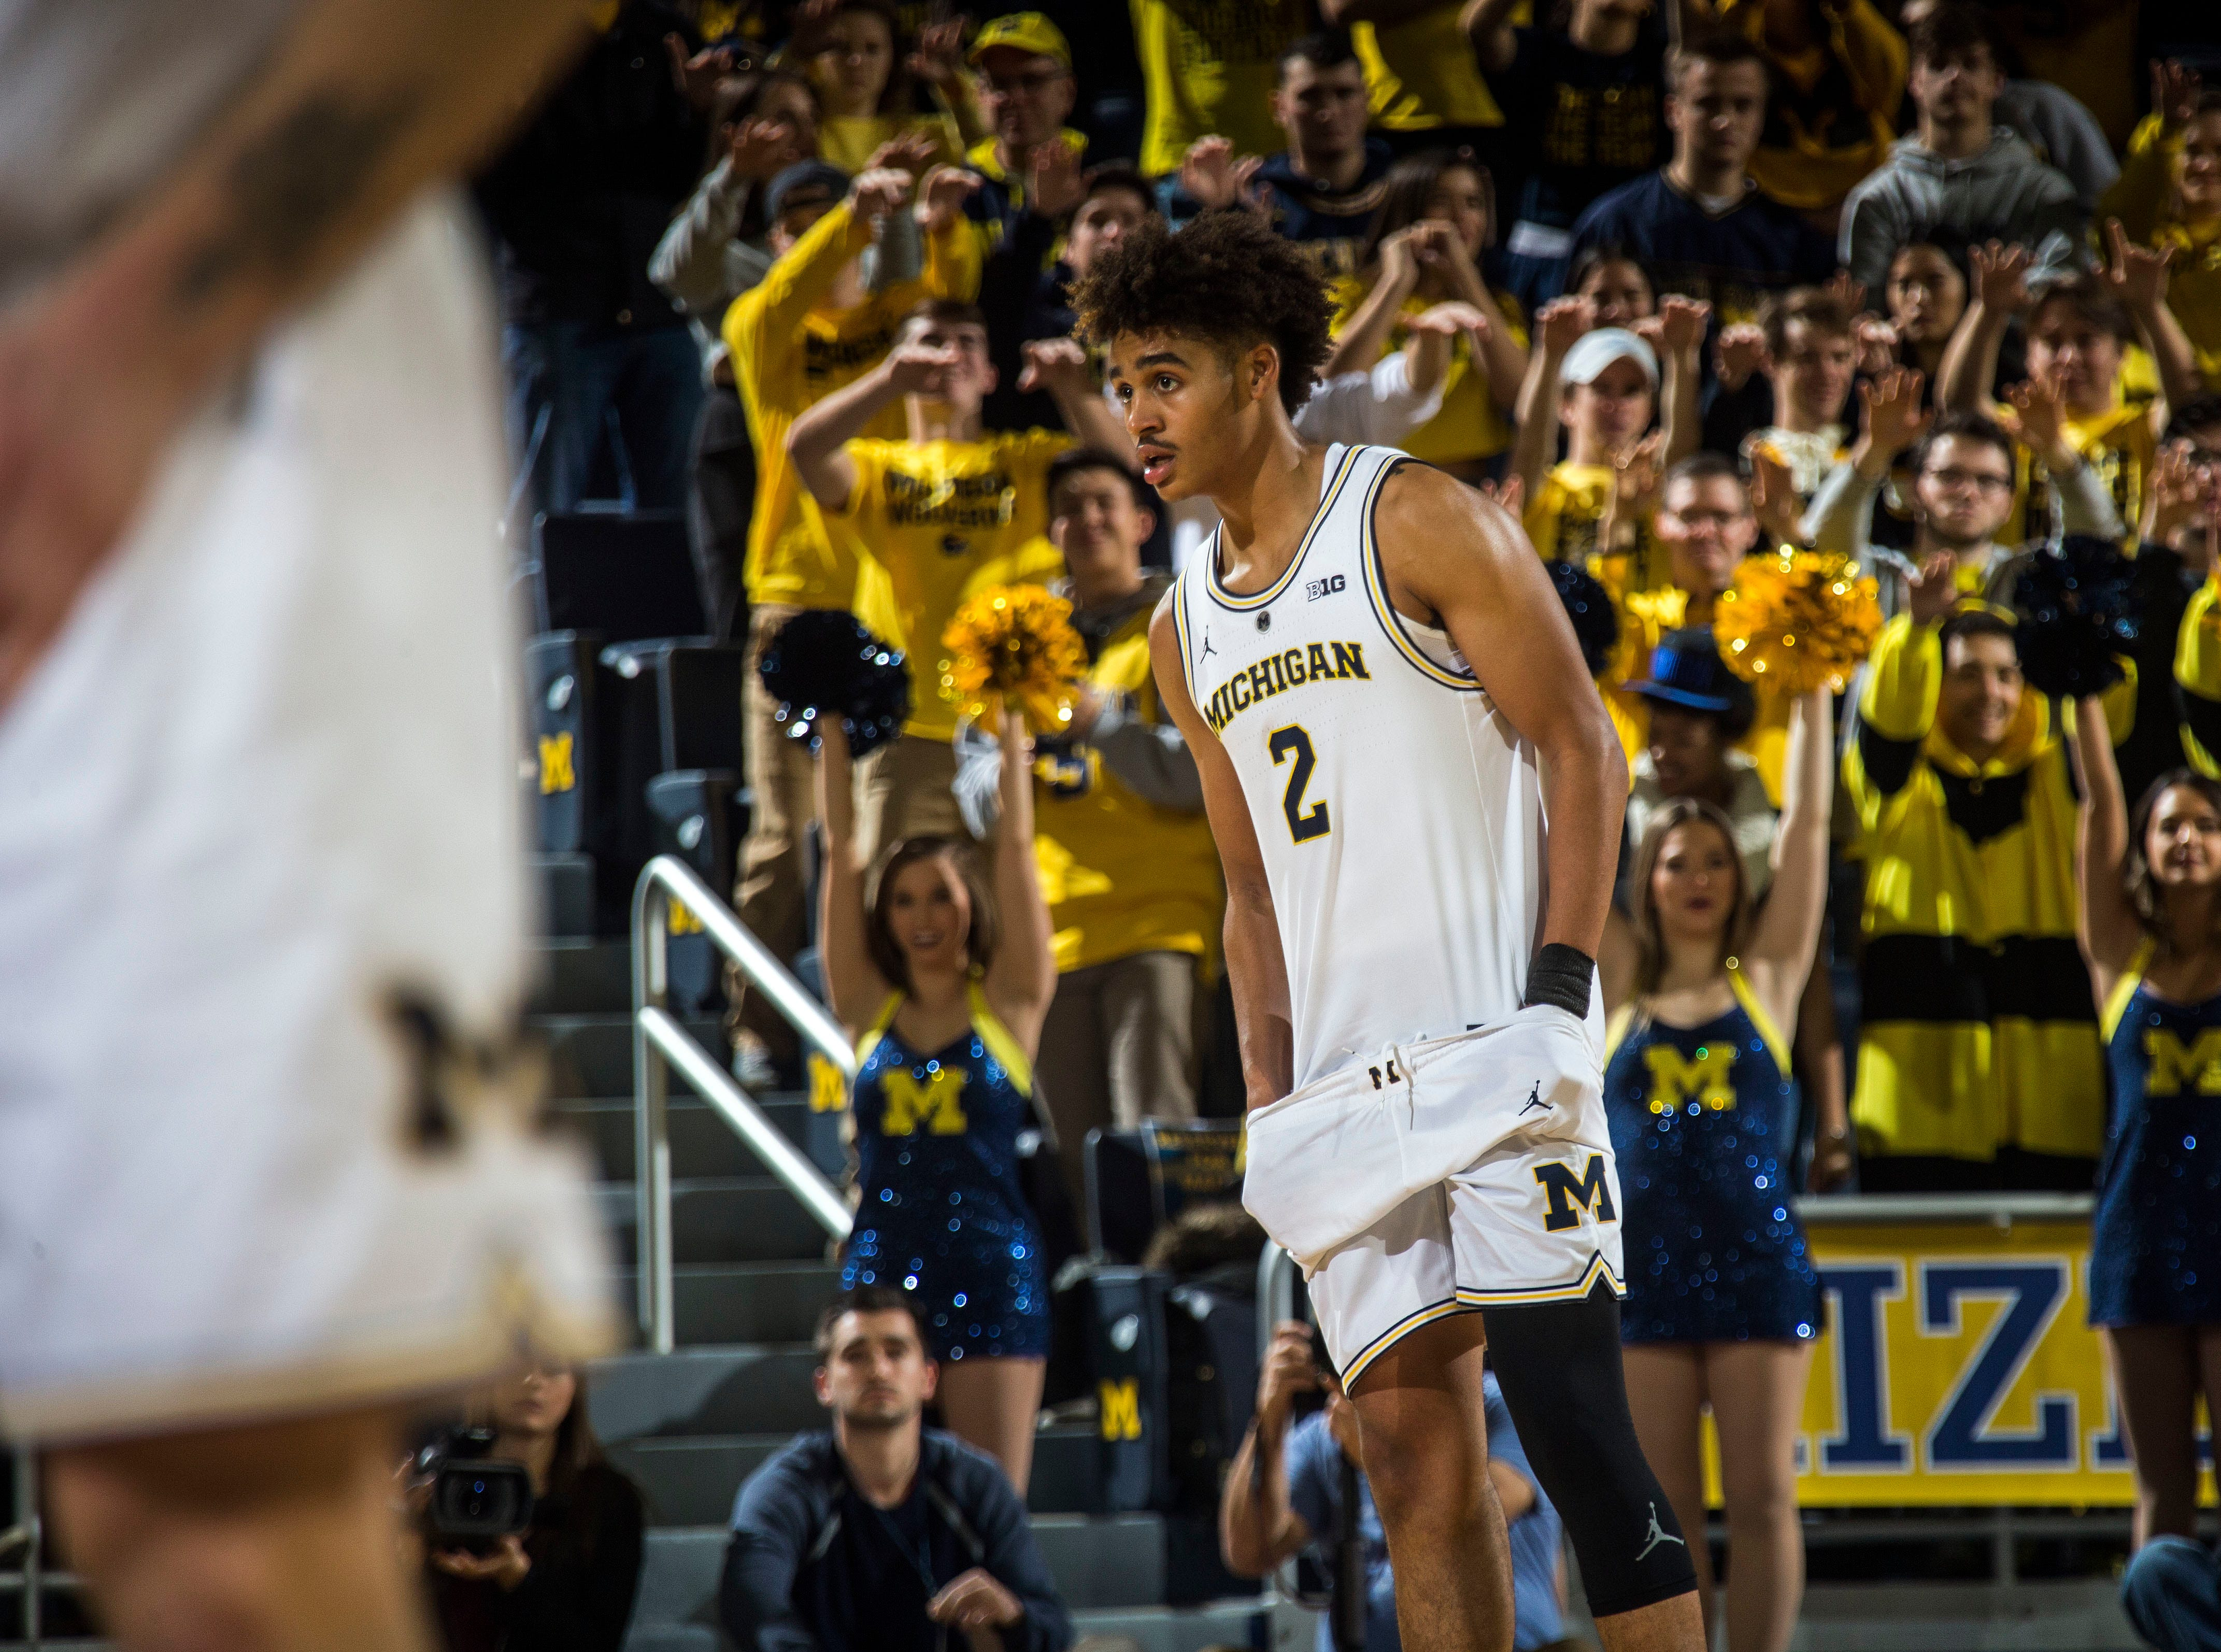 Michigan guard Jordan Poole (2) adjusts his shorts on court during a free throw in the second half of an NCAA college basketball game against Holy Cross at Crisler Center in Ann Arbor, Mich., Saturday, Nov. 10, 2018. Michigan won 56-37. (AP Photo/Tony Ding)